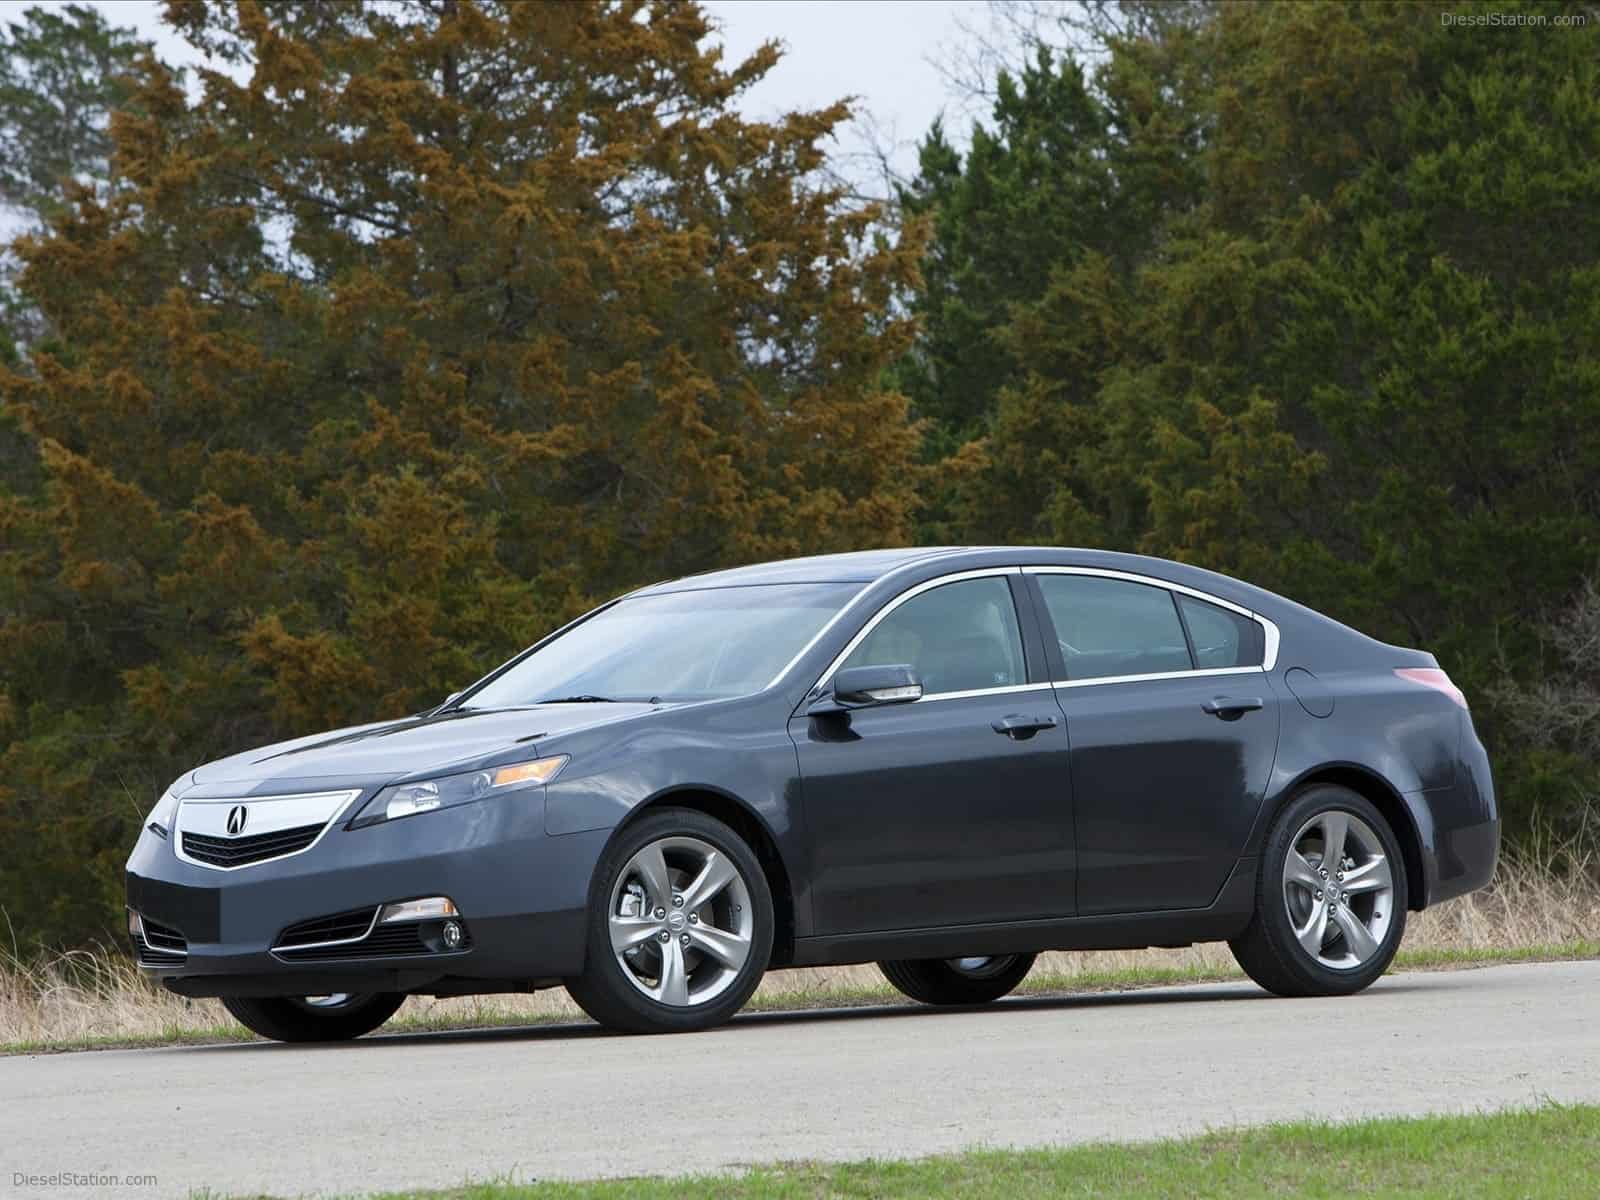 Our list of cheap luxury cars includes the 2012 Acura TL